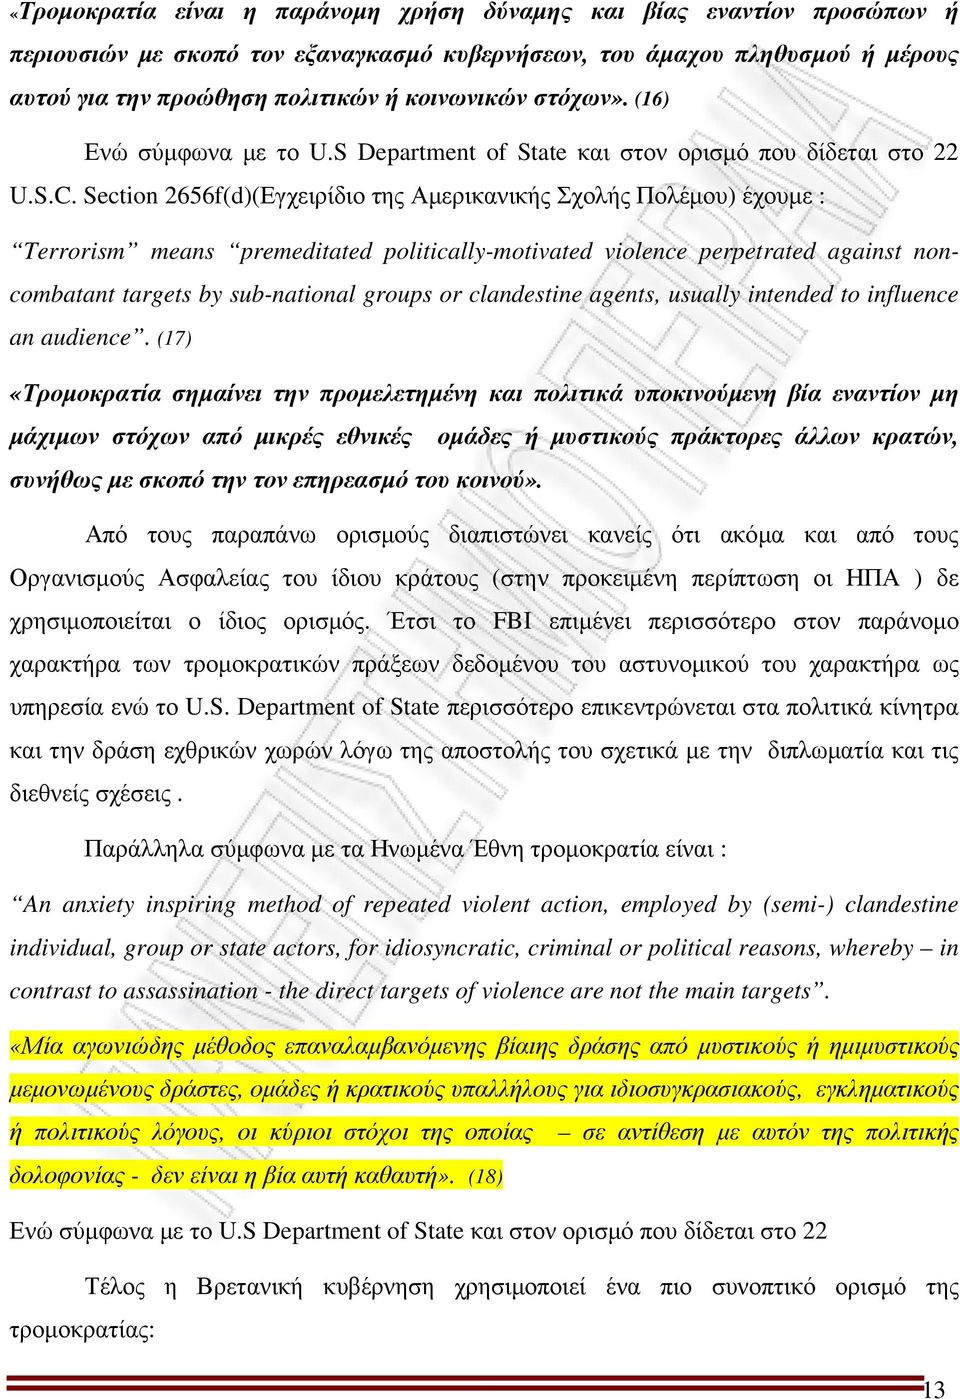 Section 2656f(d)(Εγχειρίδιο της Αµερικανικής Σχολής Πολέµου) έχουµε : Terrorism means premeditated politically-motivated violence perpetrated against noncombatant targets by sub-national groups or